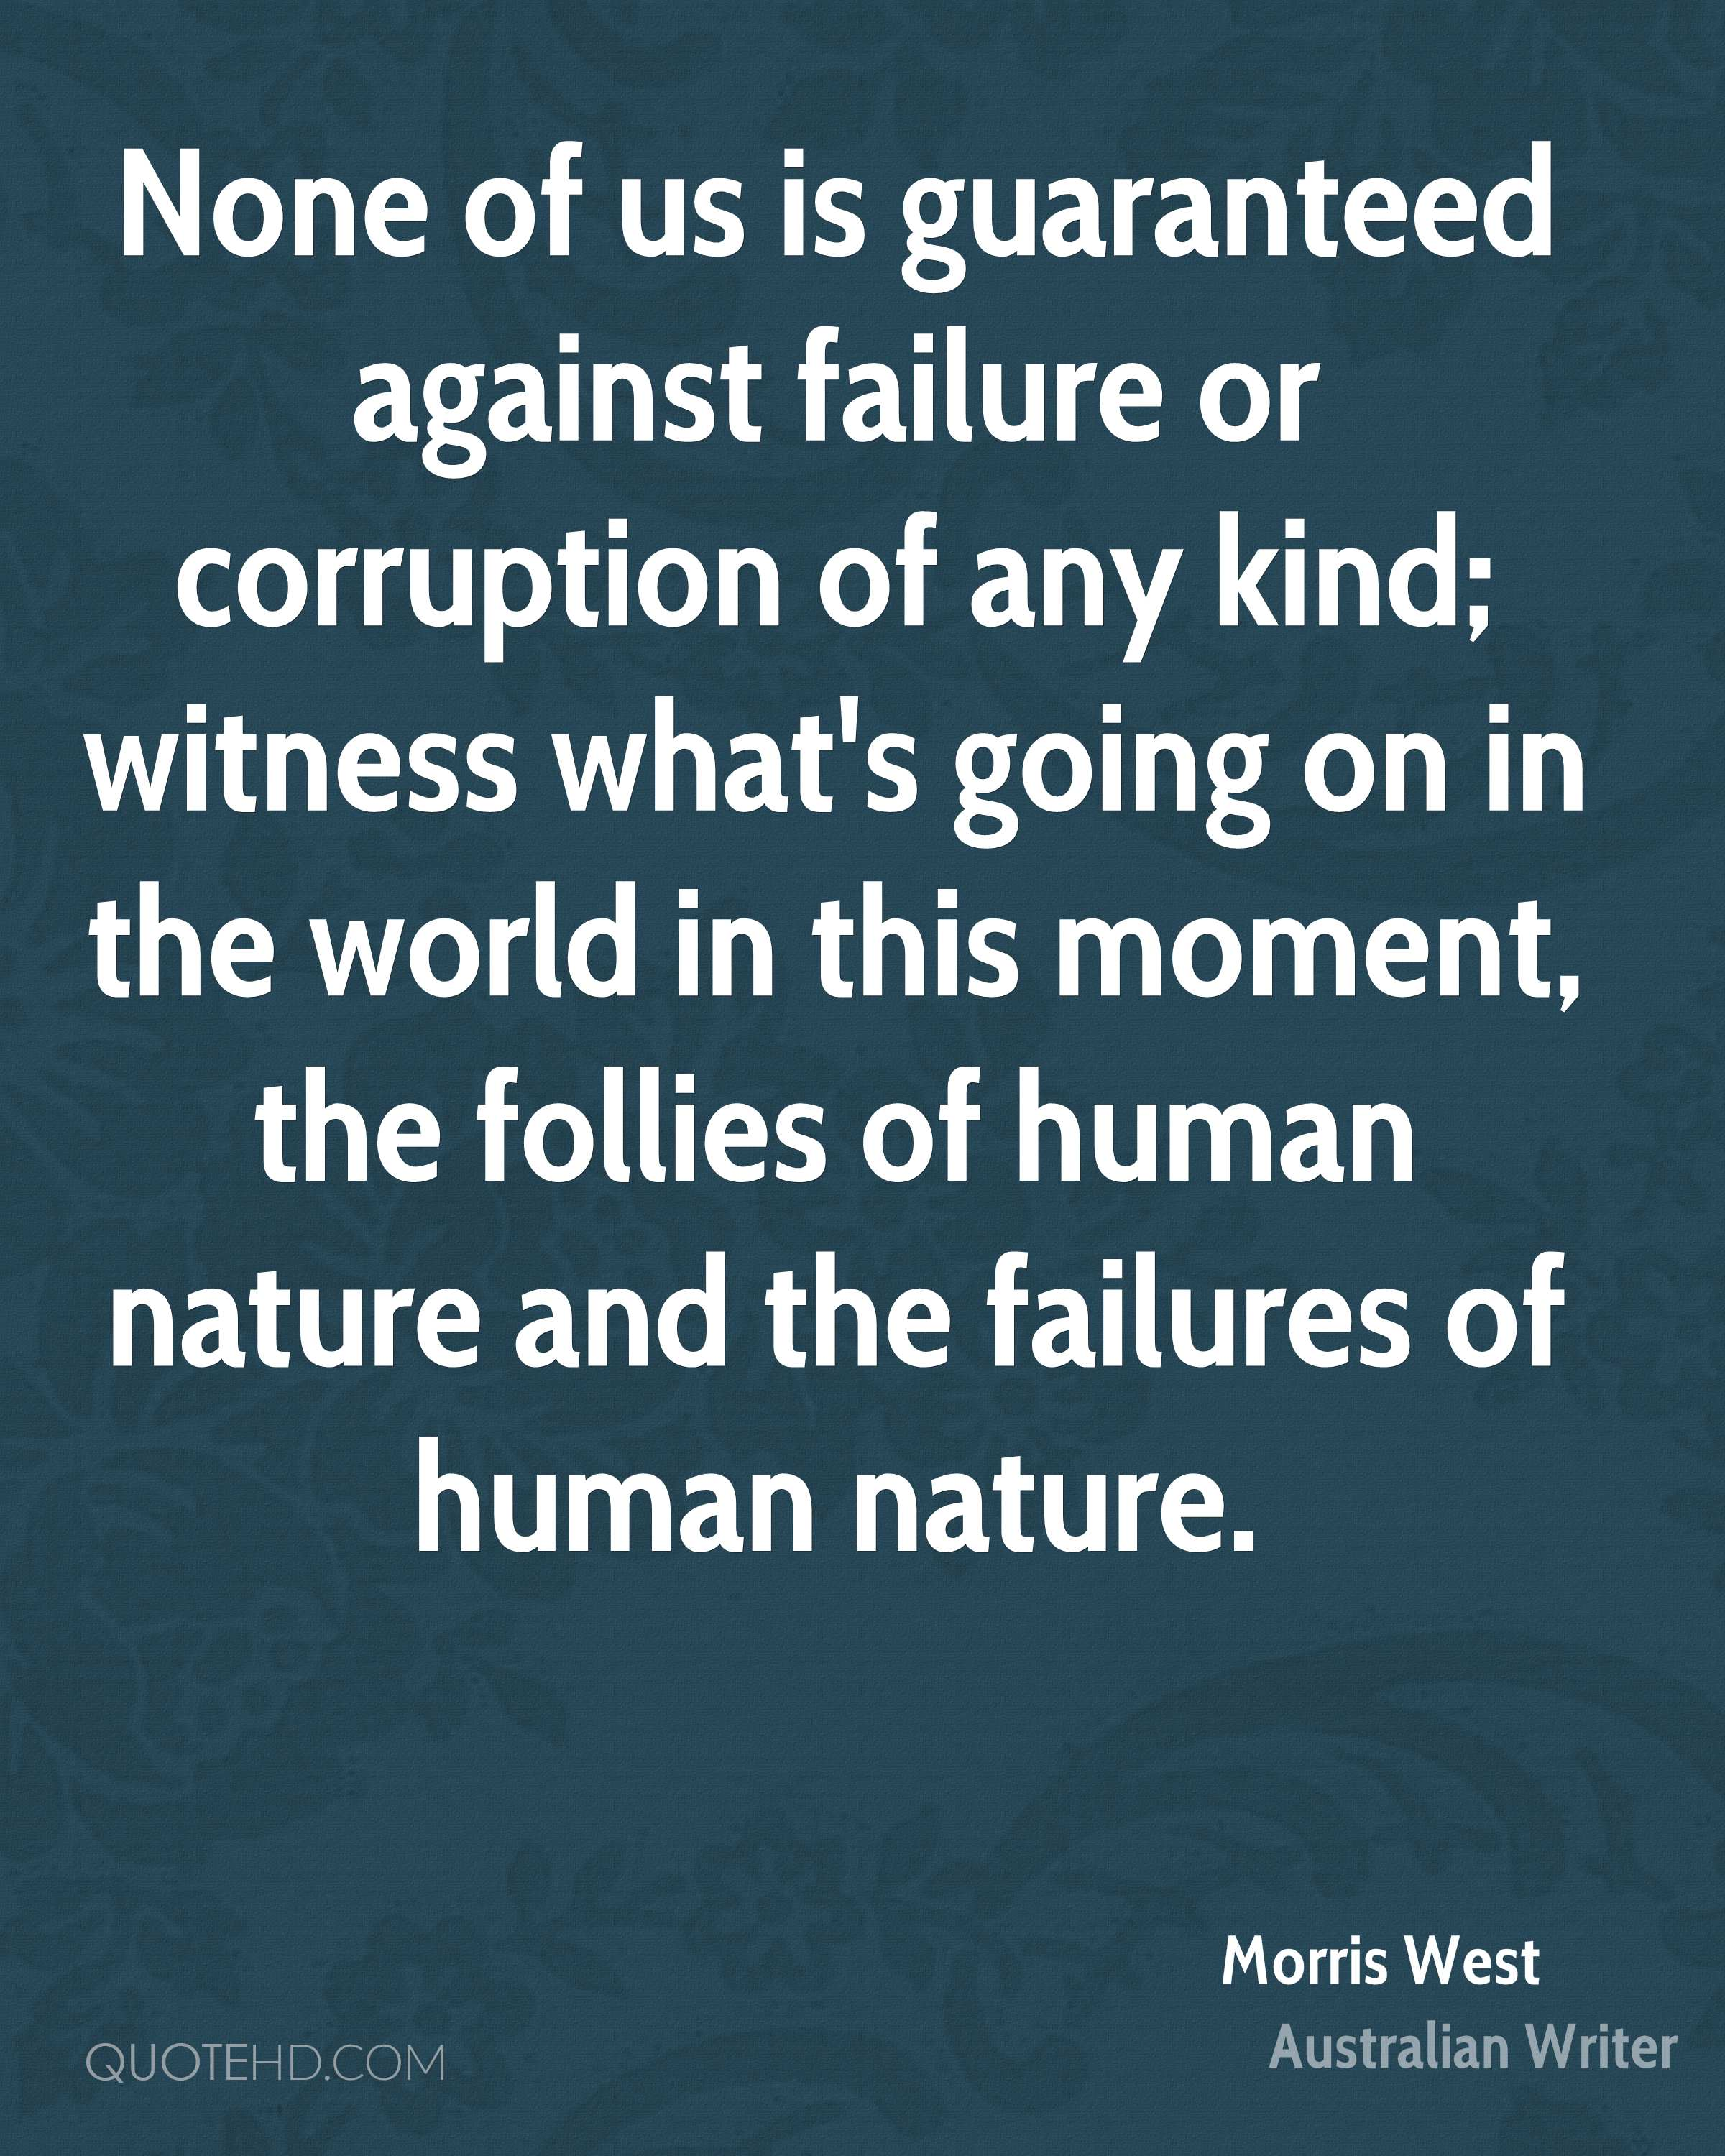 None of us is guaranteed against failure or corruption of any kind; witness what's going on in the world in this moment, the follies of human nature and the failures of human nature.